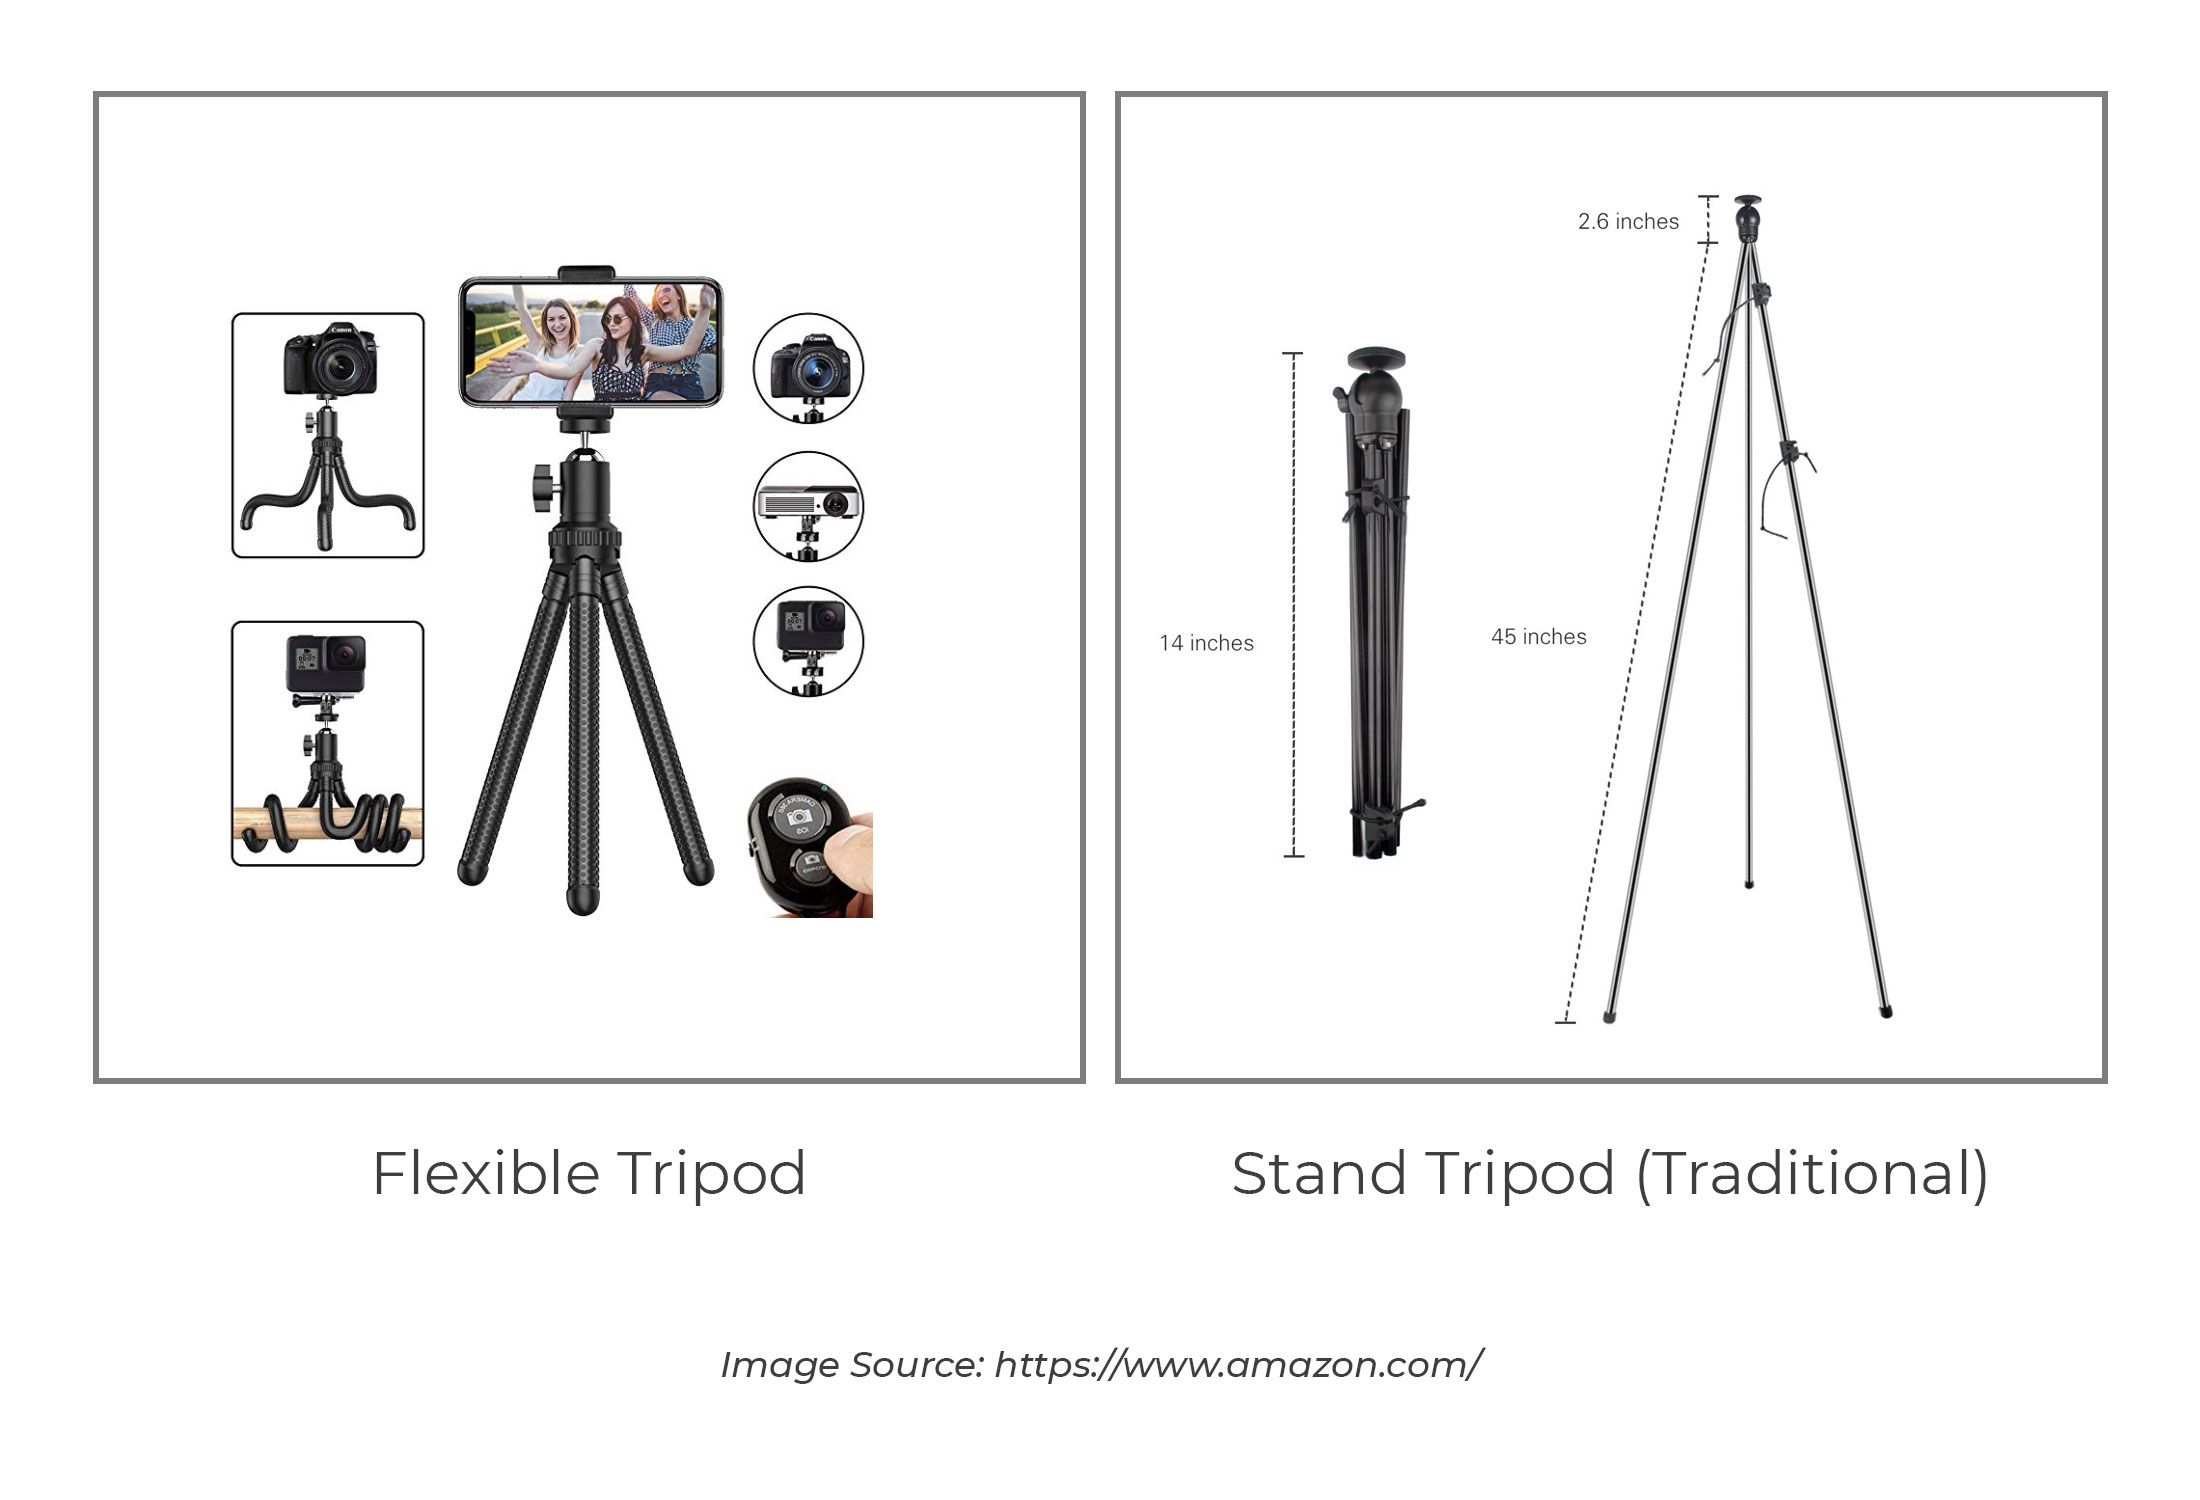 Product Photography Tips - Use a Tripod for Consistency